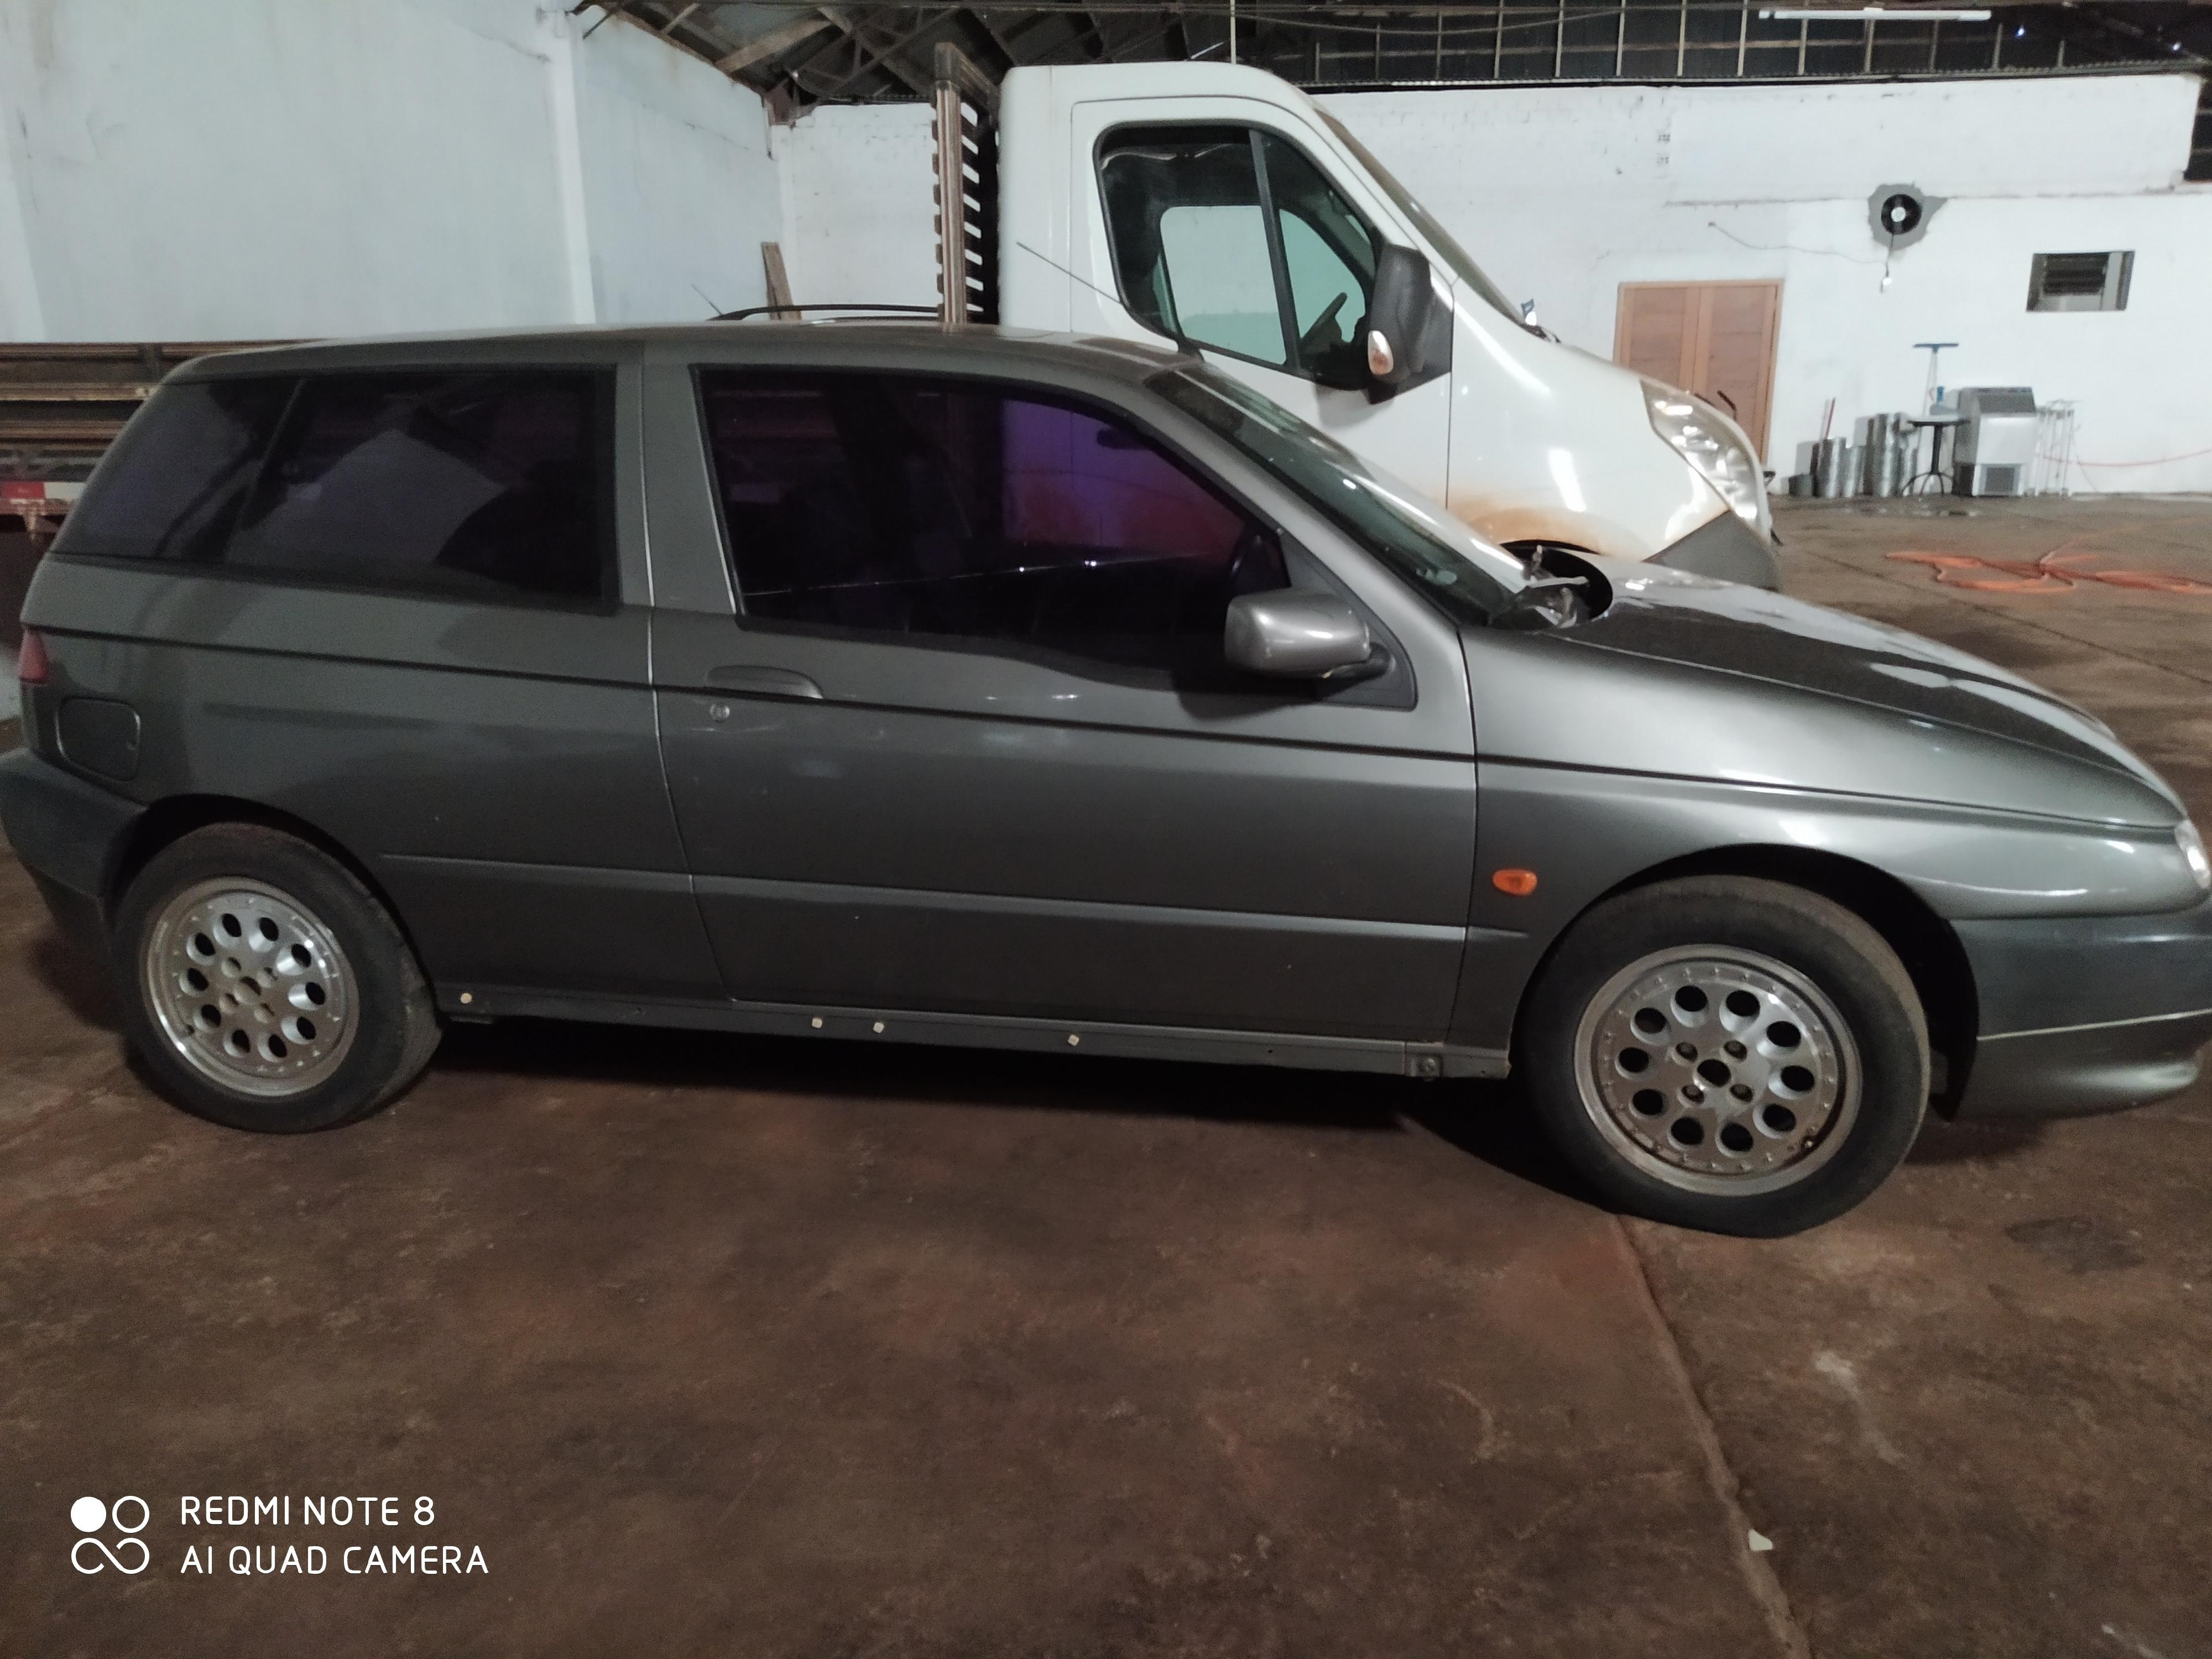 LOTE 2570